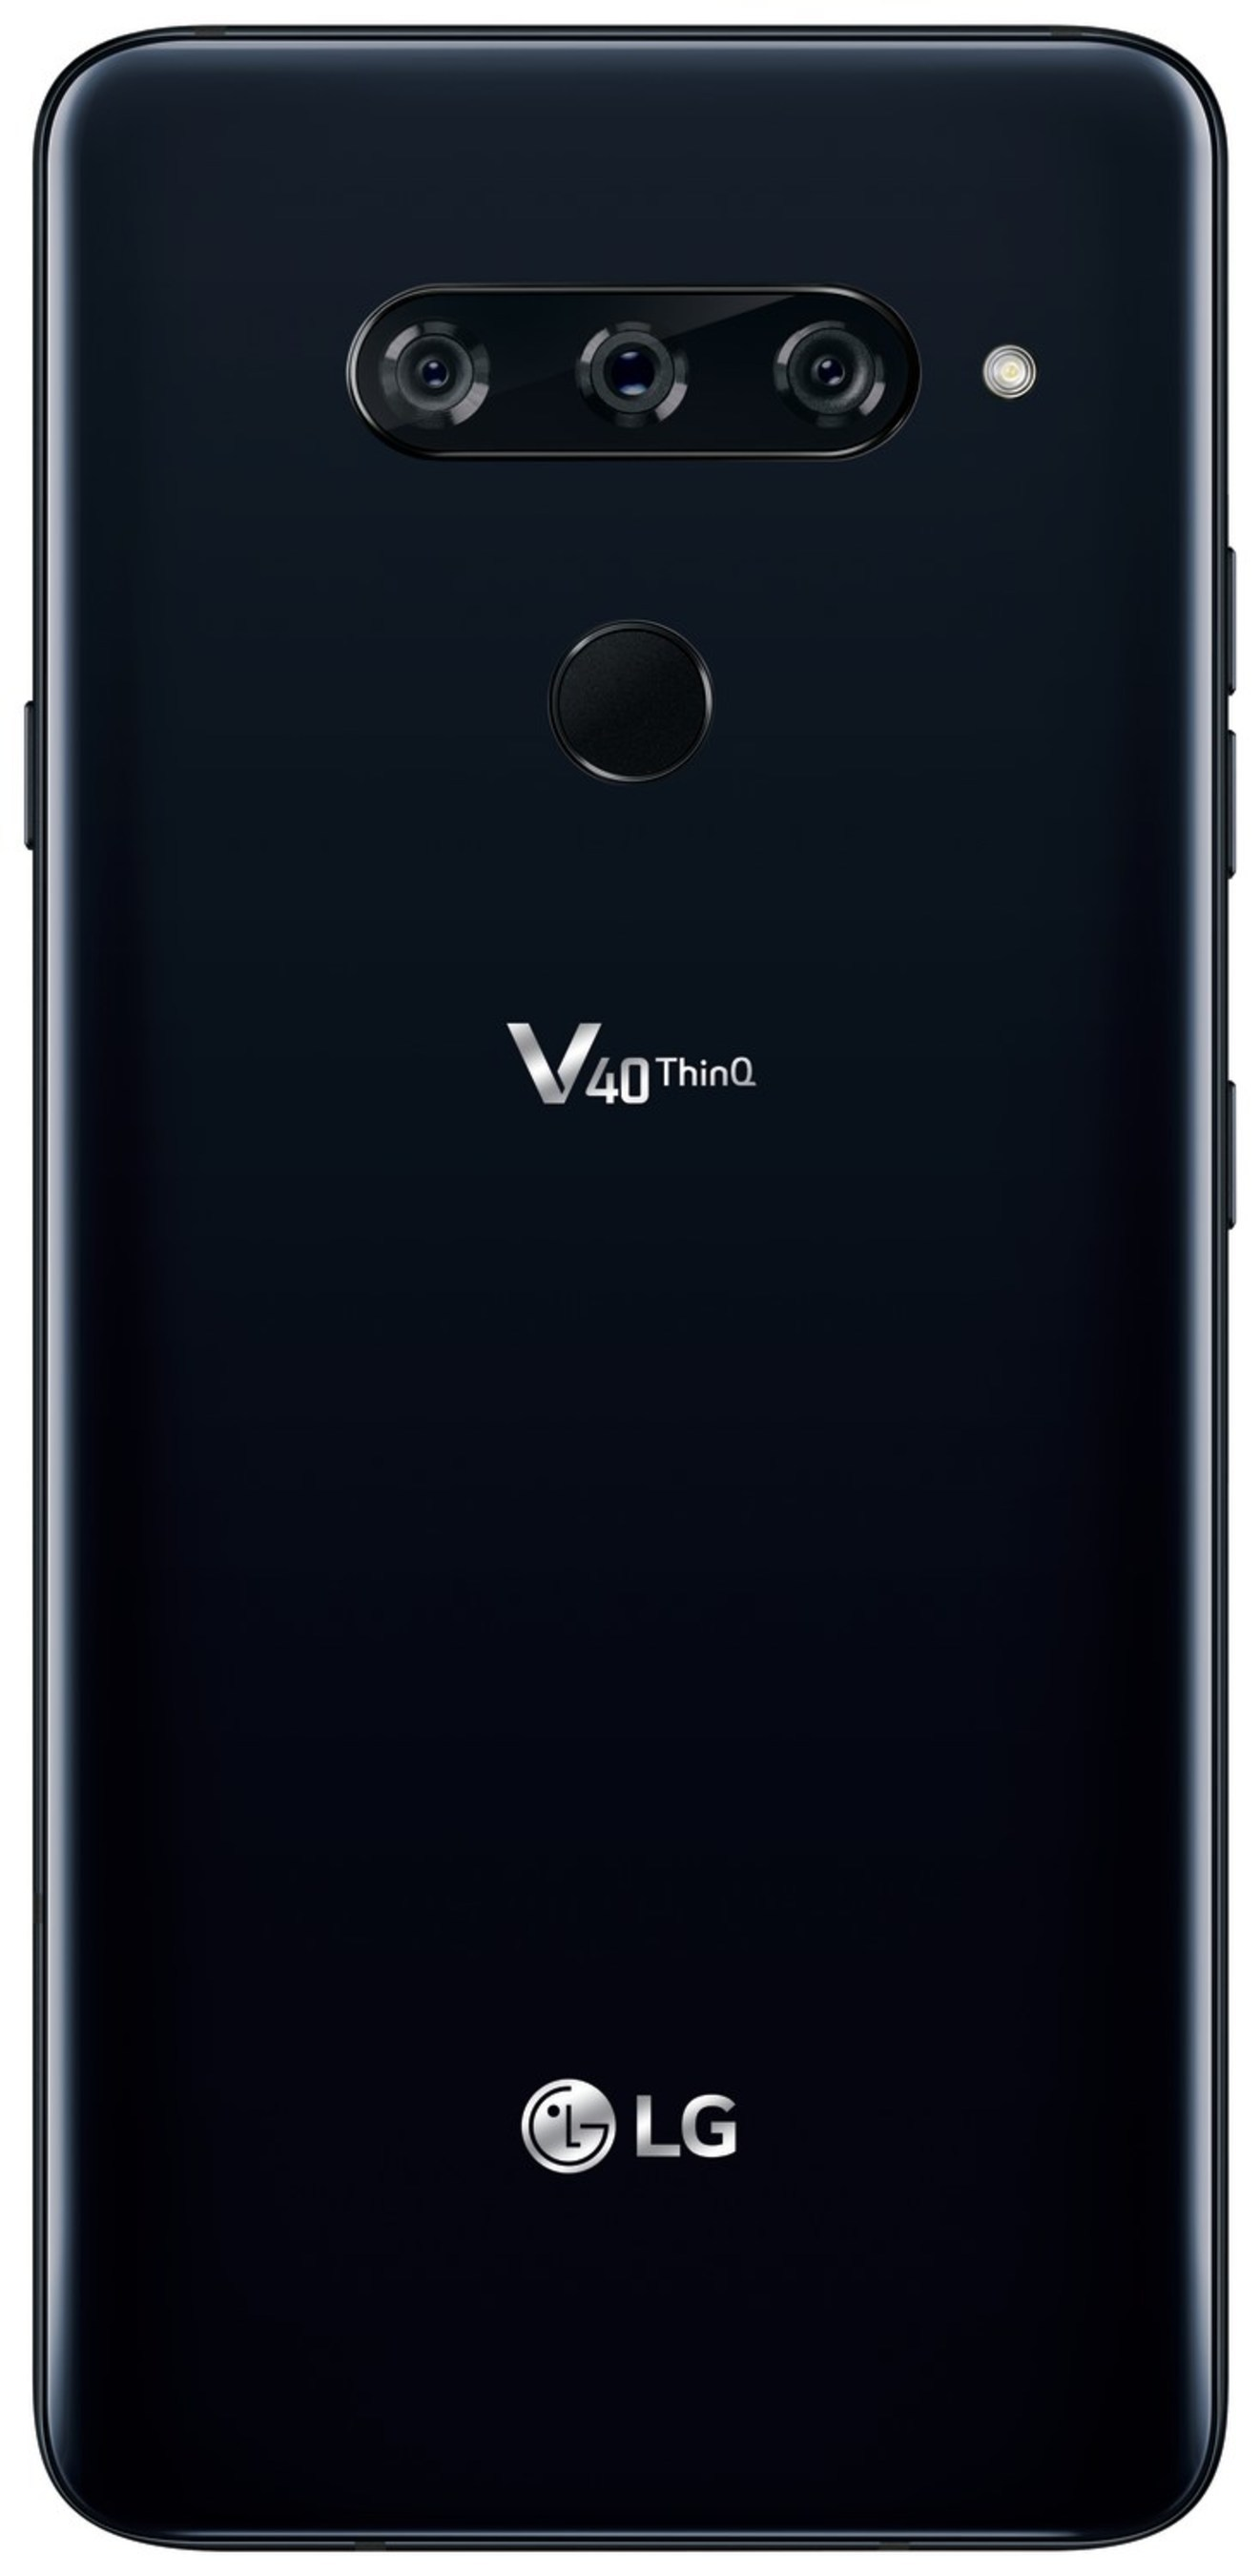 LG Delivers Ultimate Five Camera Smartphone With LG V40 ThinQ™